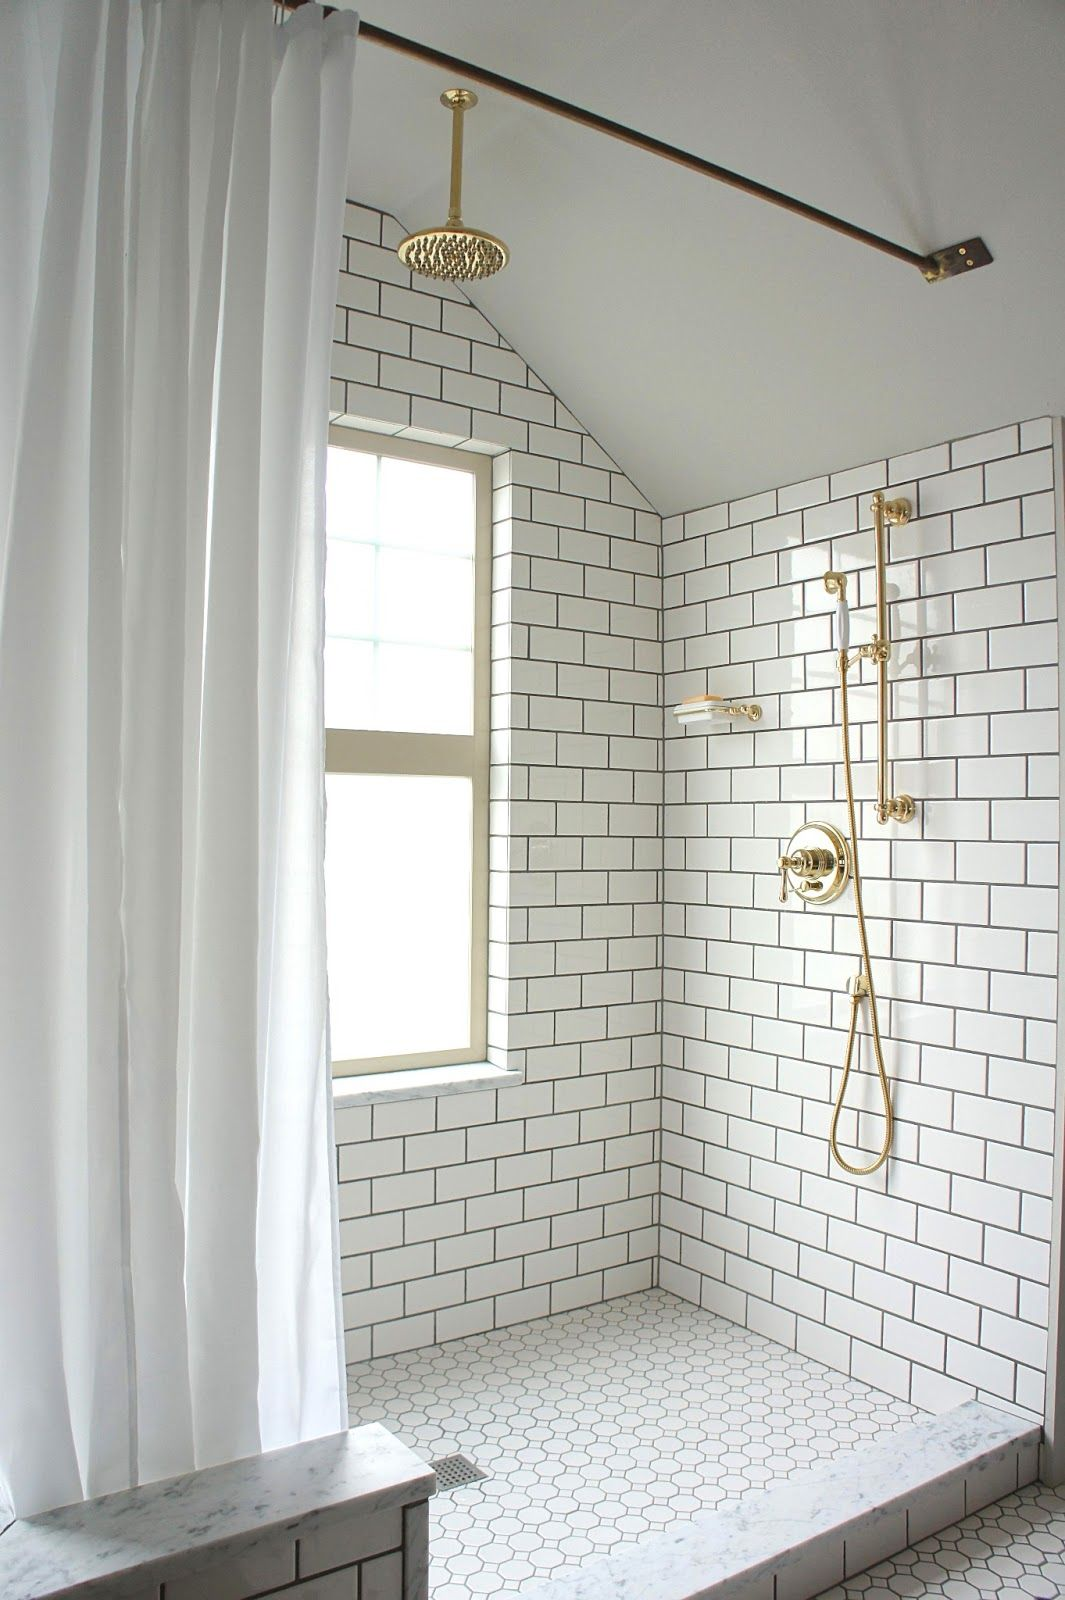 White tiles in bathroom subway tiles all white bathroom ideas